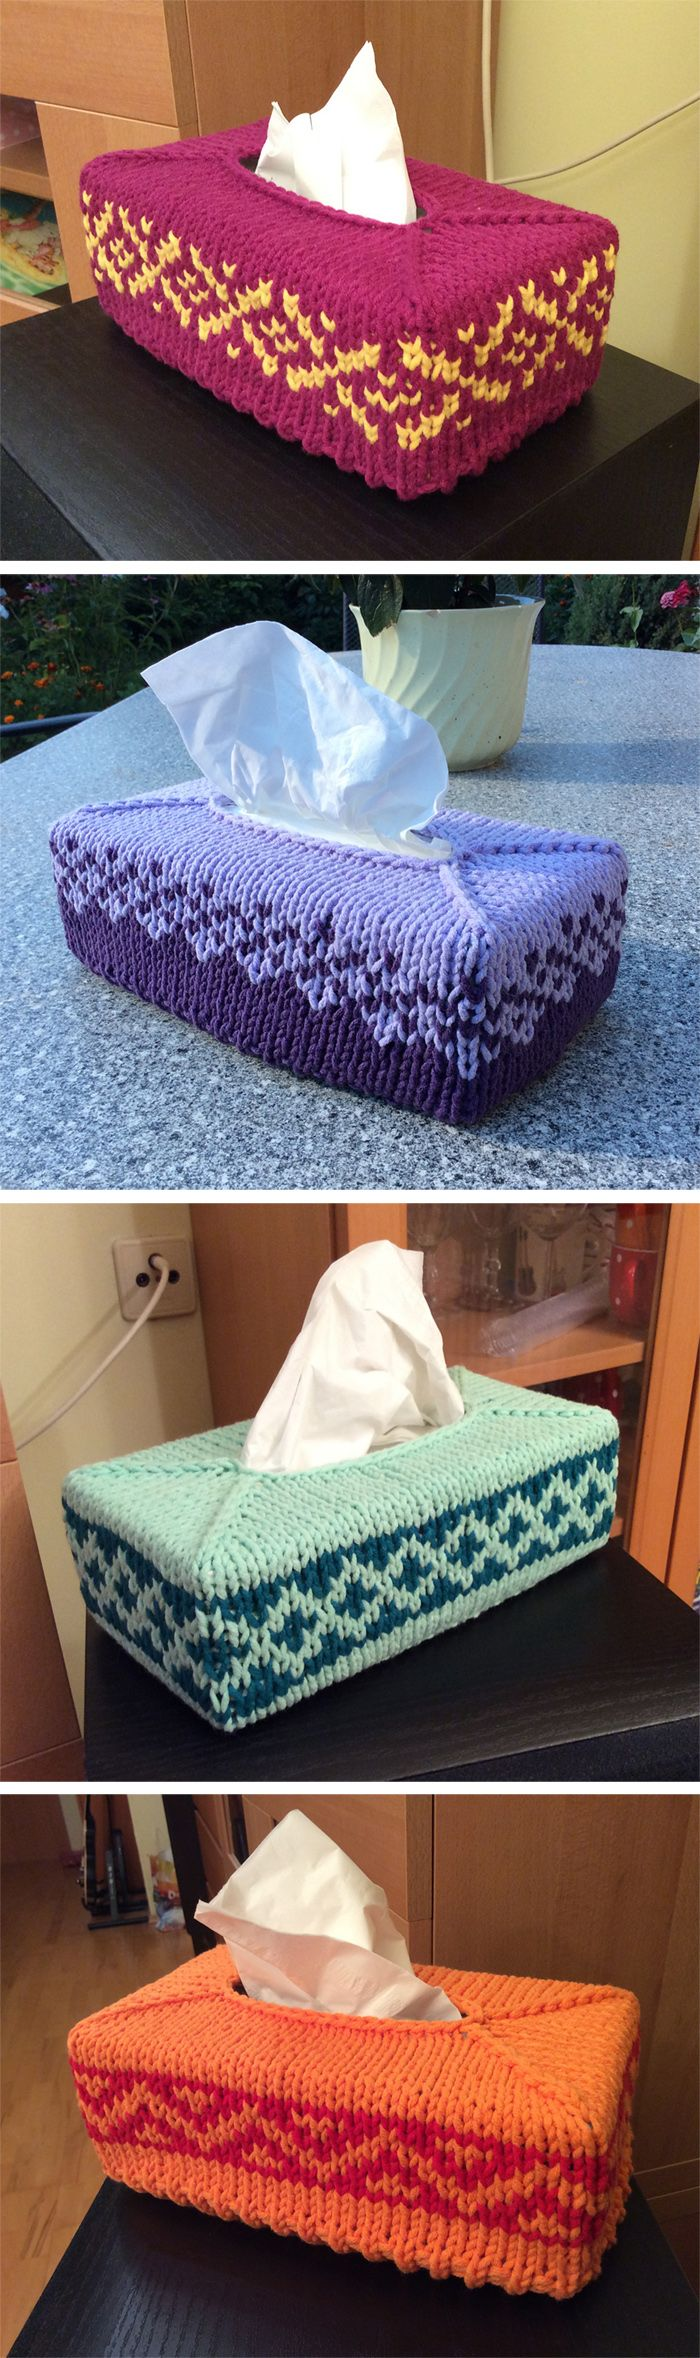 Free Knitting Pattern for Fair Isle Tissue Box Cover - Great stash buster and quick knit – designer says you can knit in an evening. Chunky yarn. Designed by Clair Thorley. The original pattern provides one chart pictured at the top. The pictured projects are by alterbridge who shares the charts used for those projects.